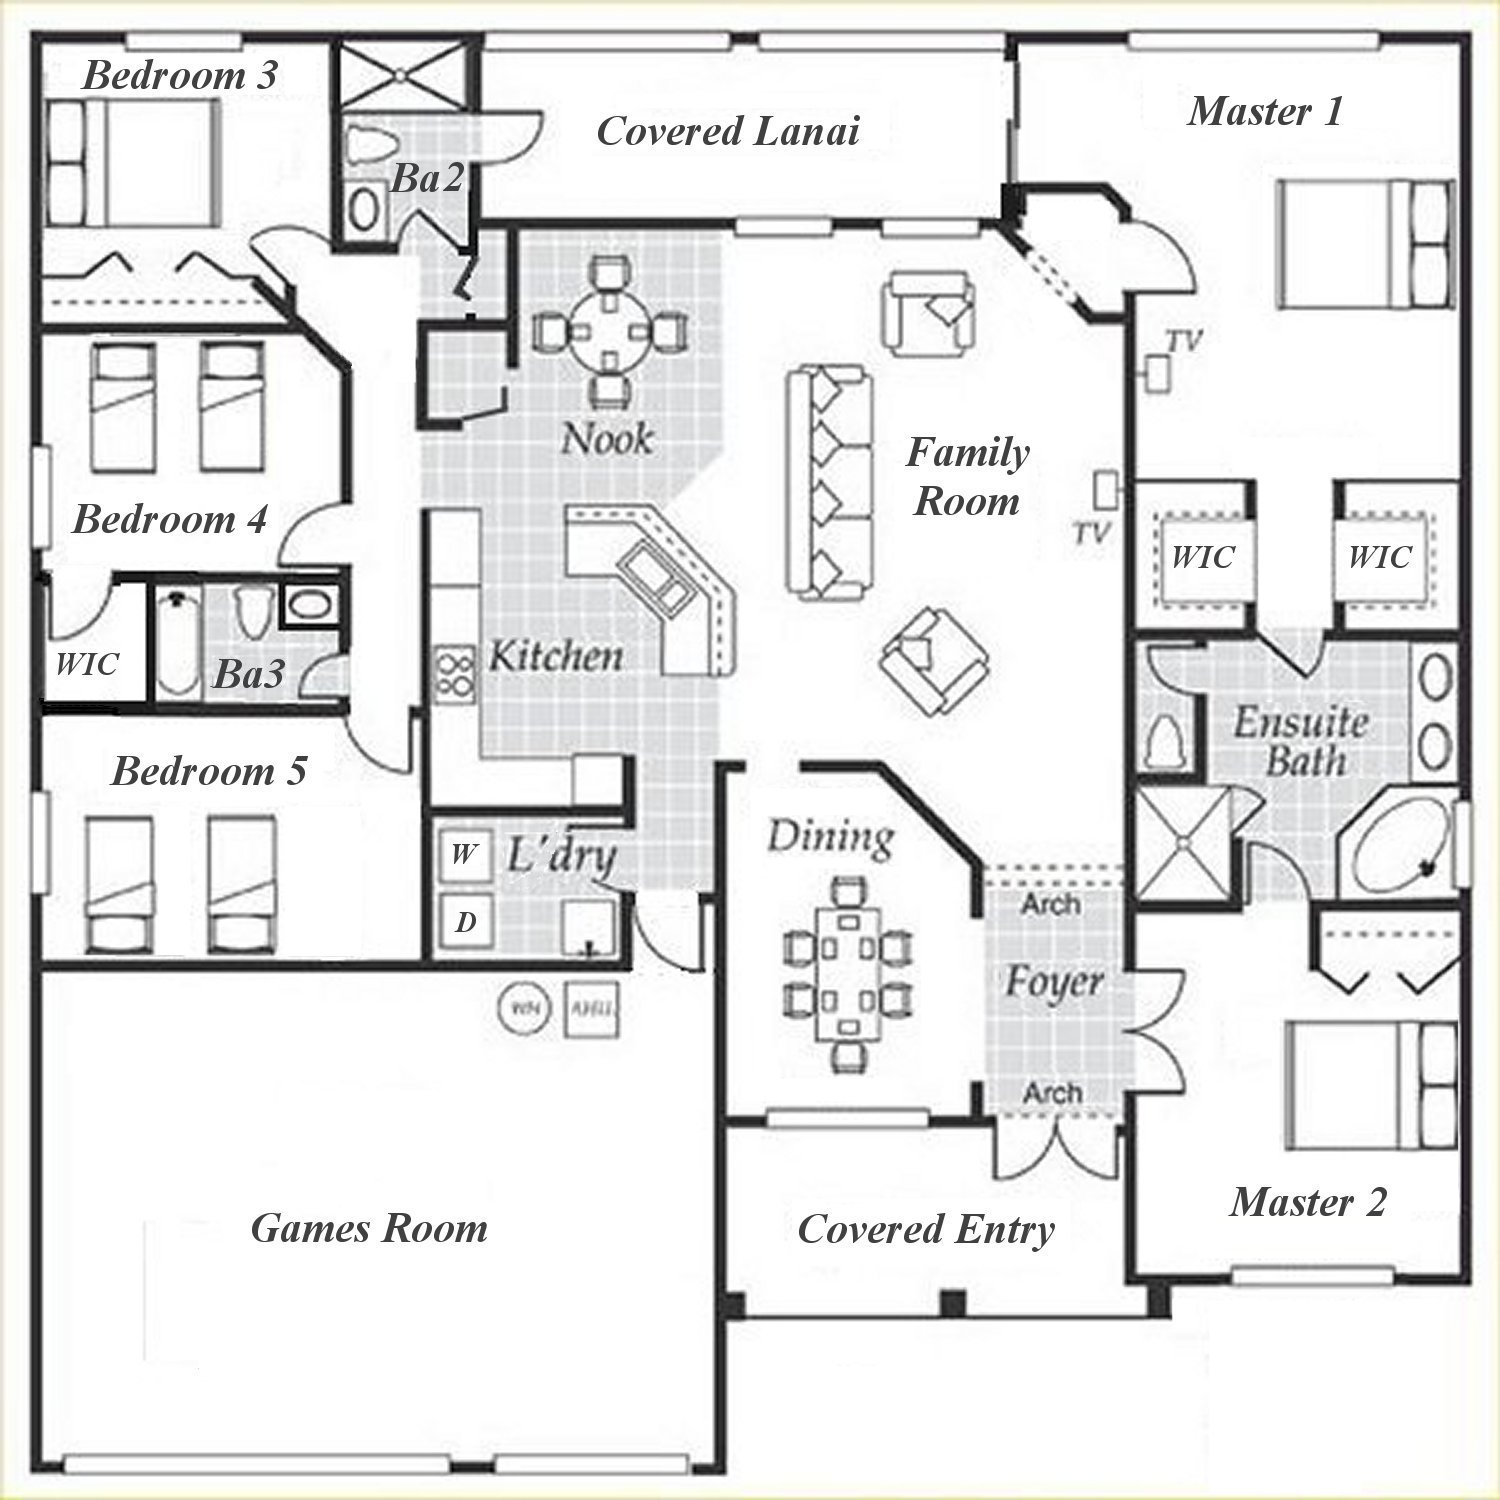 Dartmouth 1 Floorplan